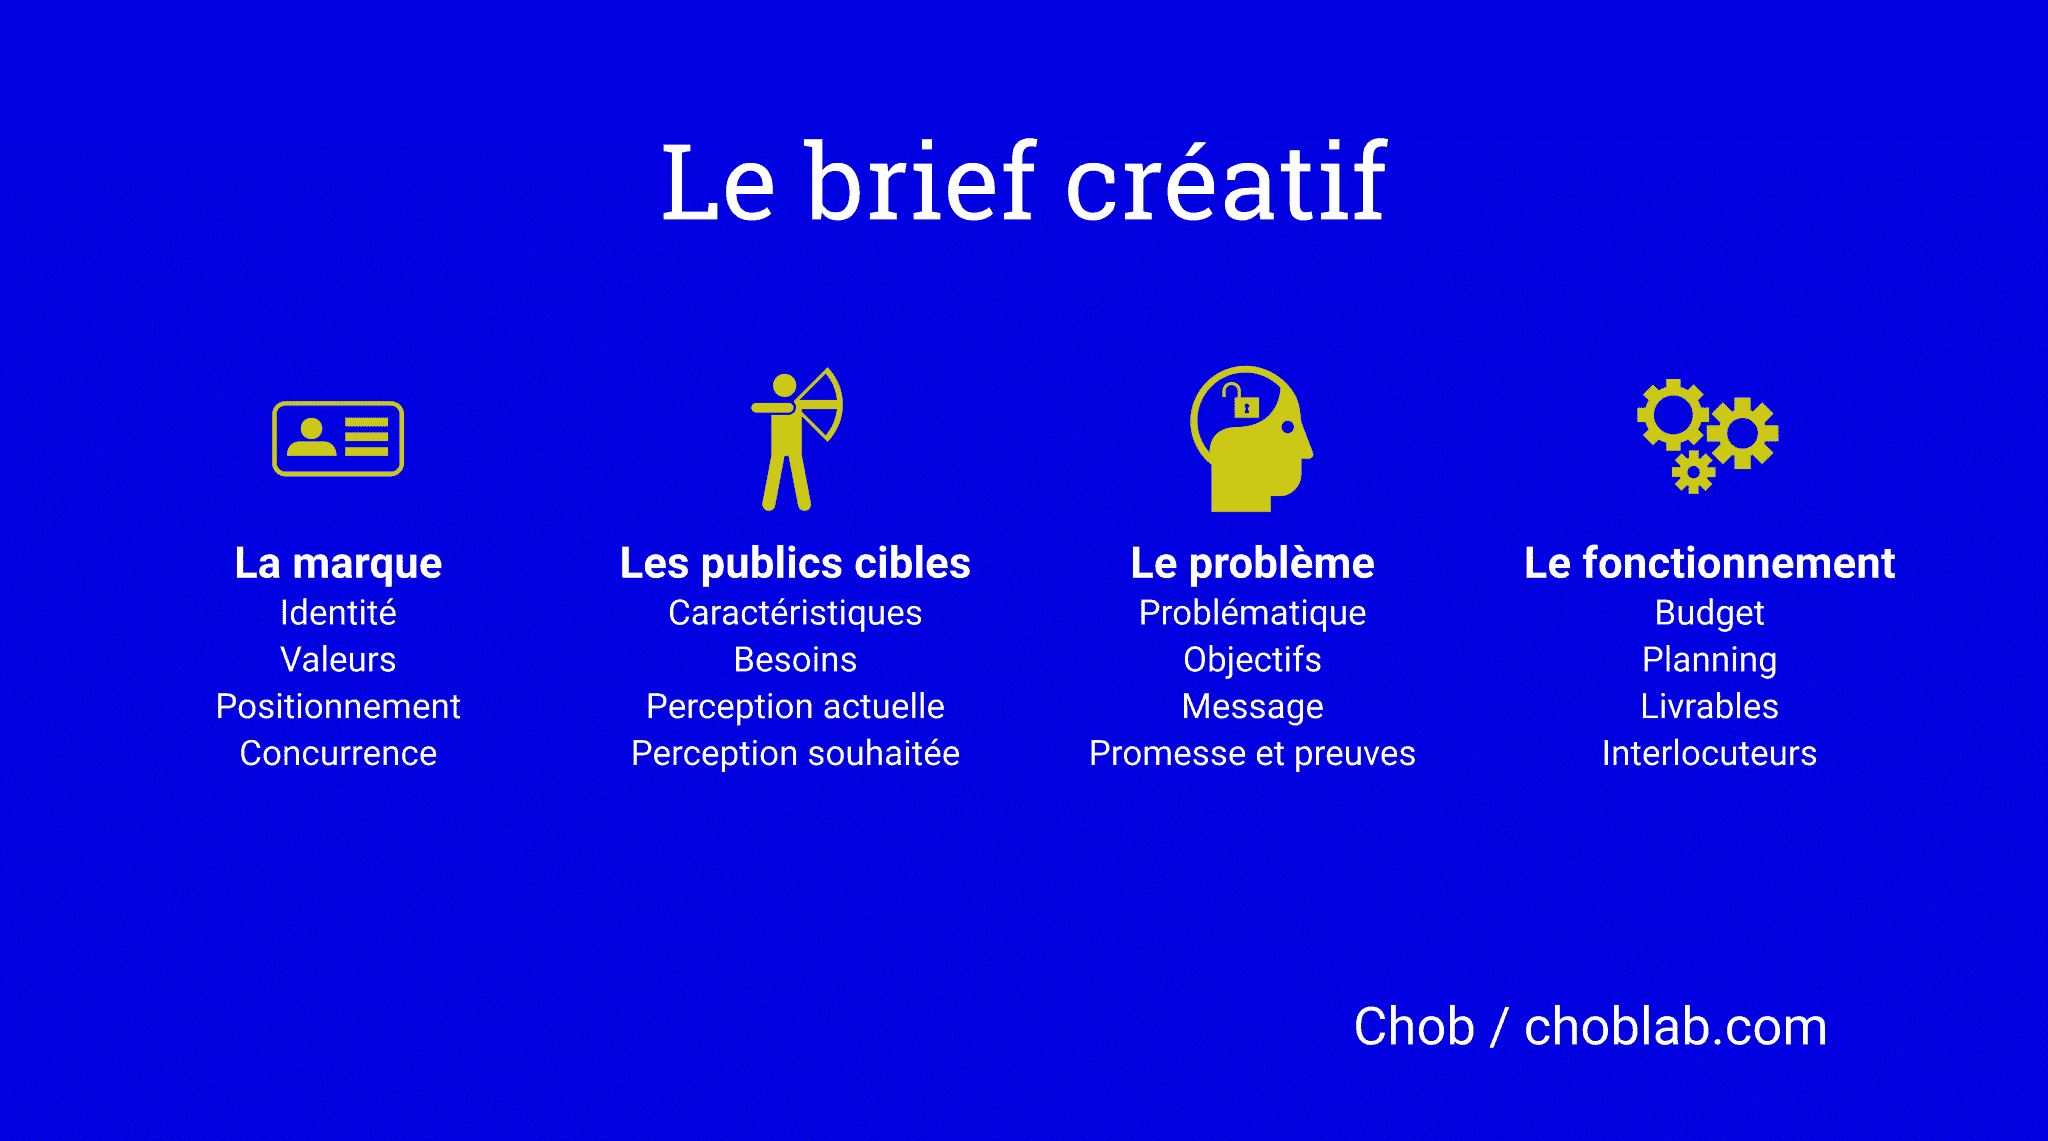 Comment Rediger Un Brief Creatif De Qualite Exemple Et Modele